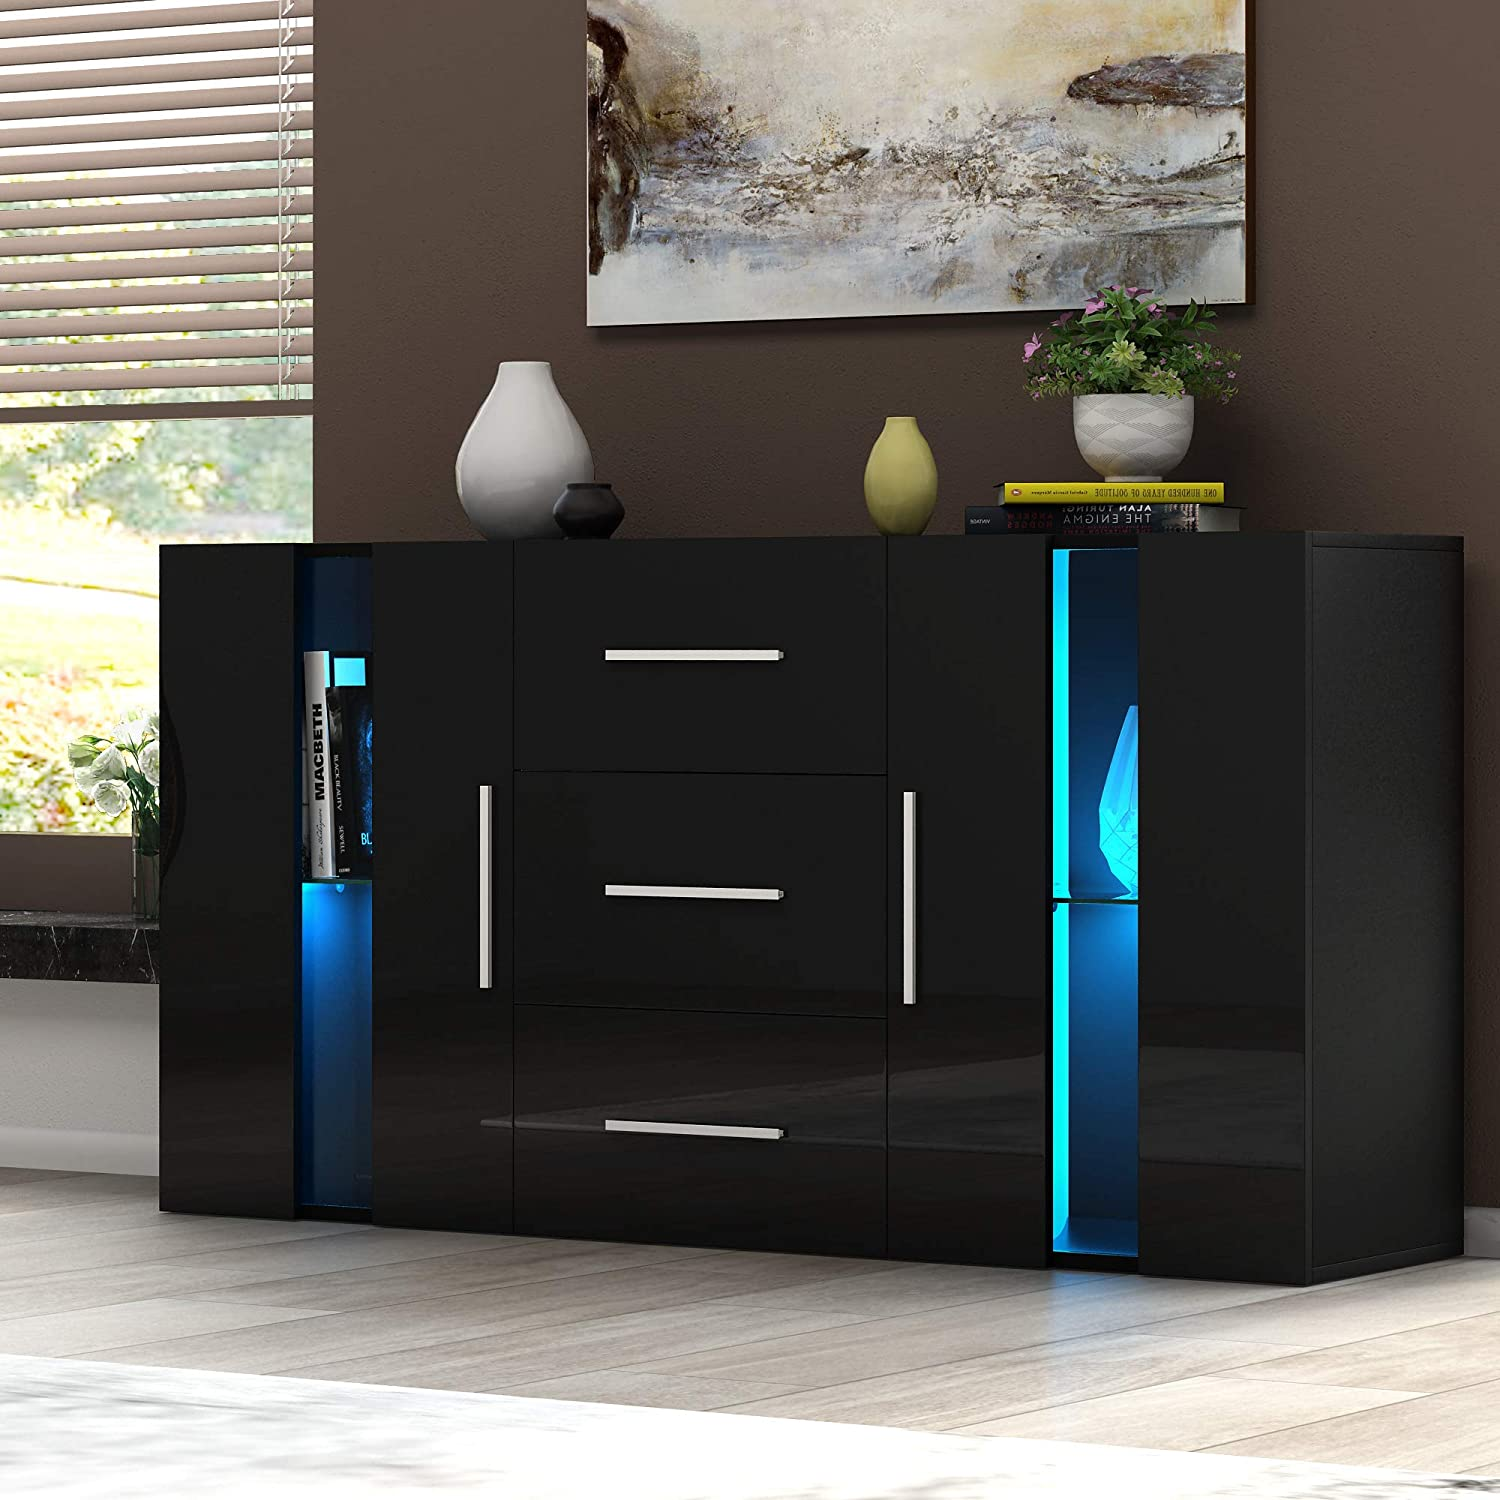 Panana Modern Sideboard High Gloss Fronts Storage Cabinet Cupboard with Drawers and Doors RGB LED Lights Living Room Hallway Black